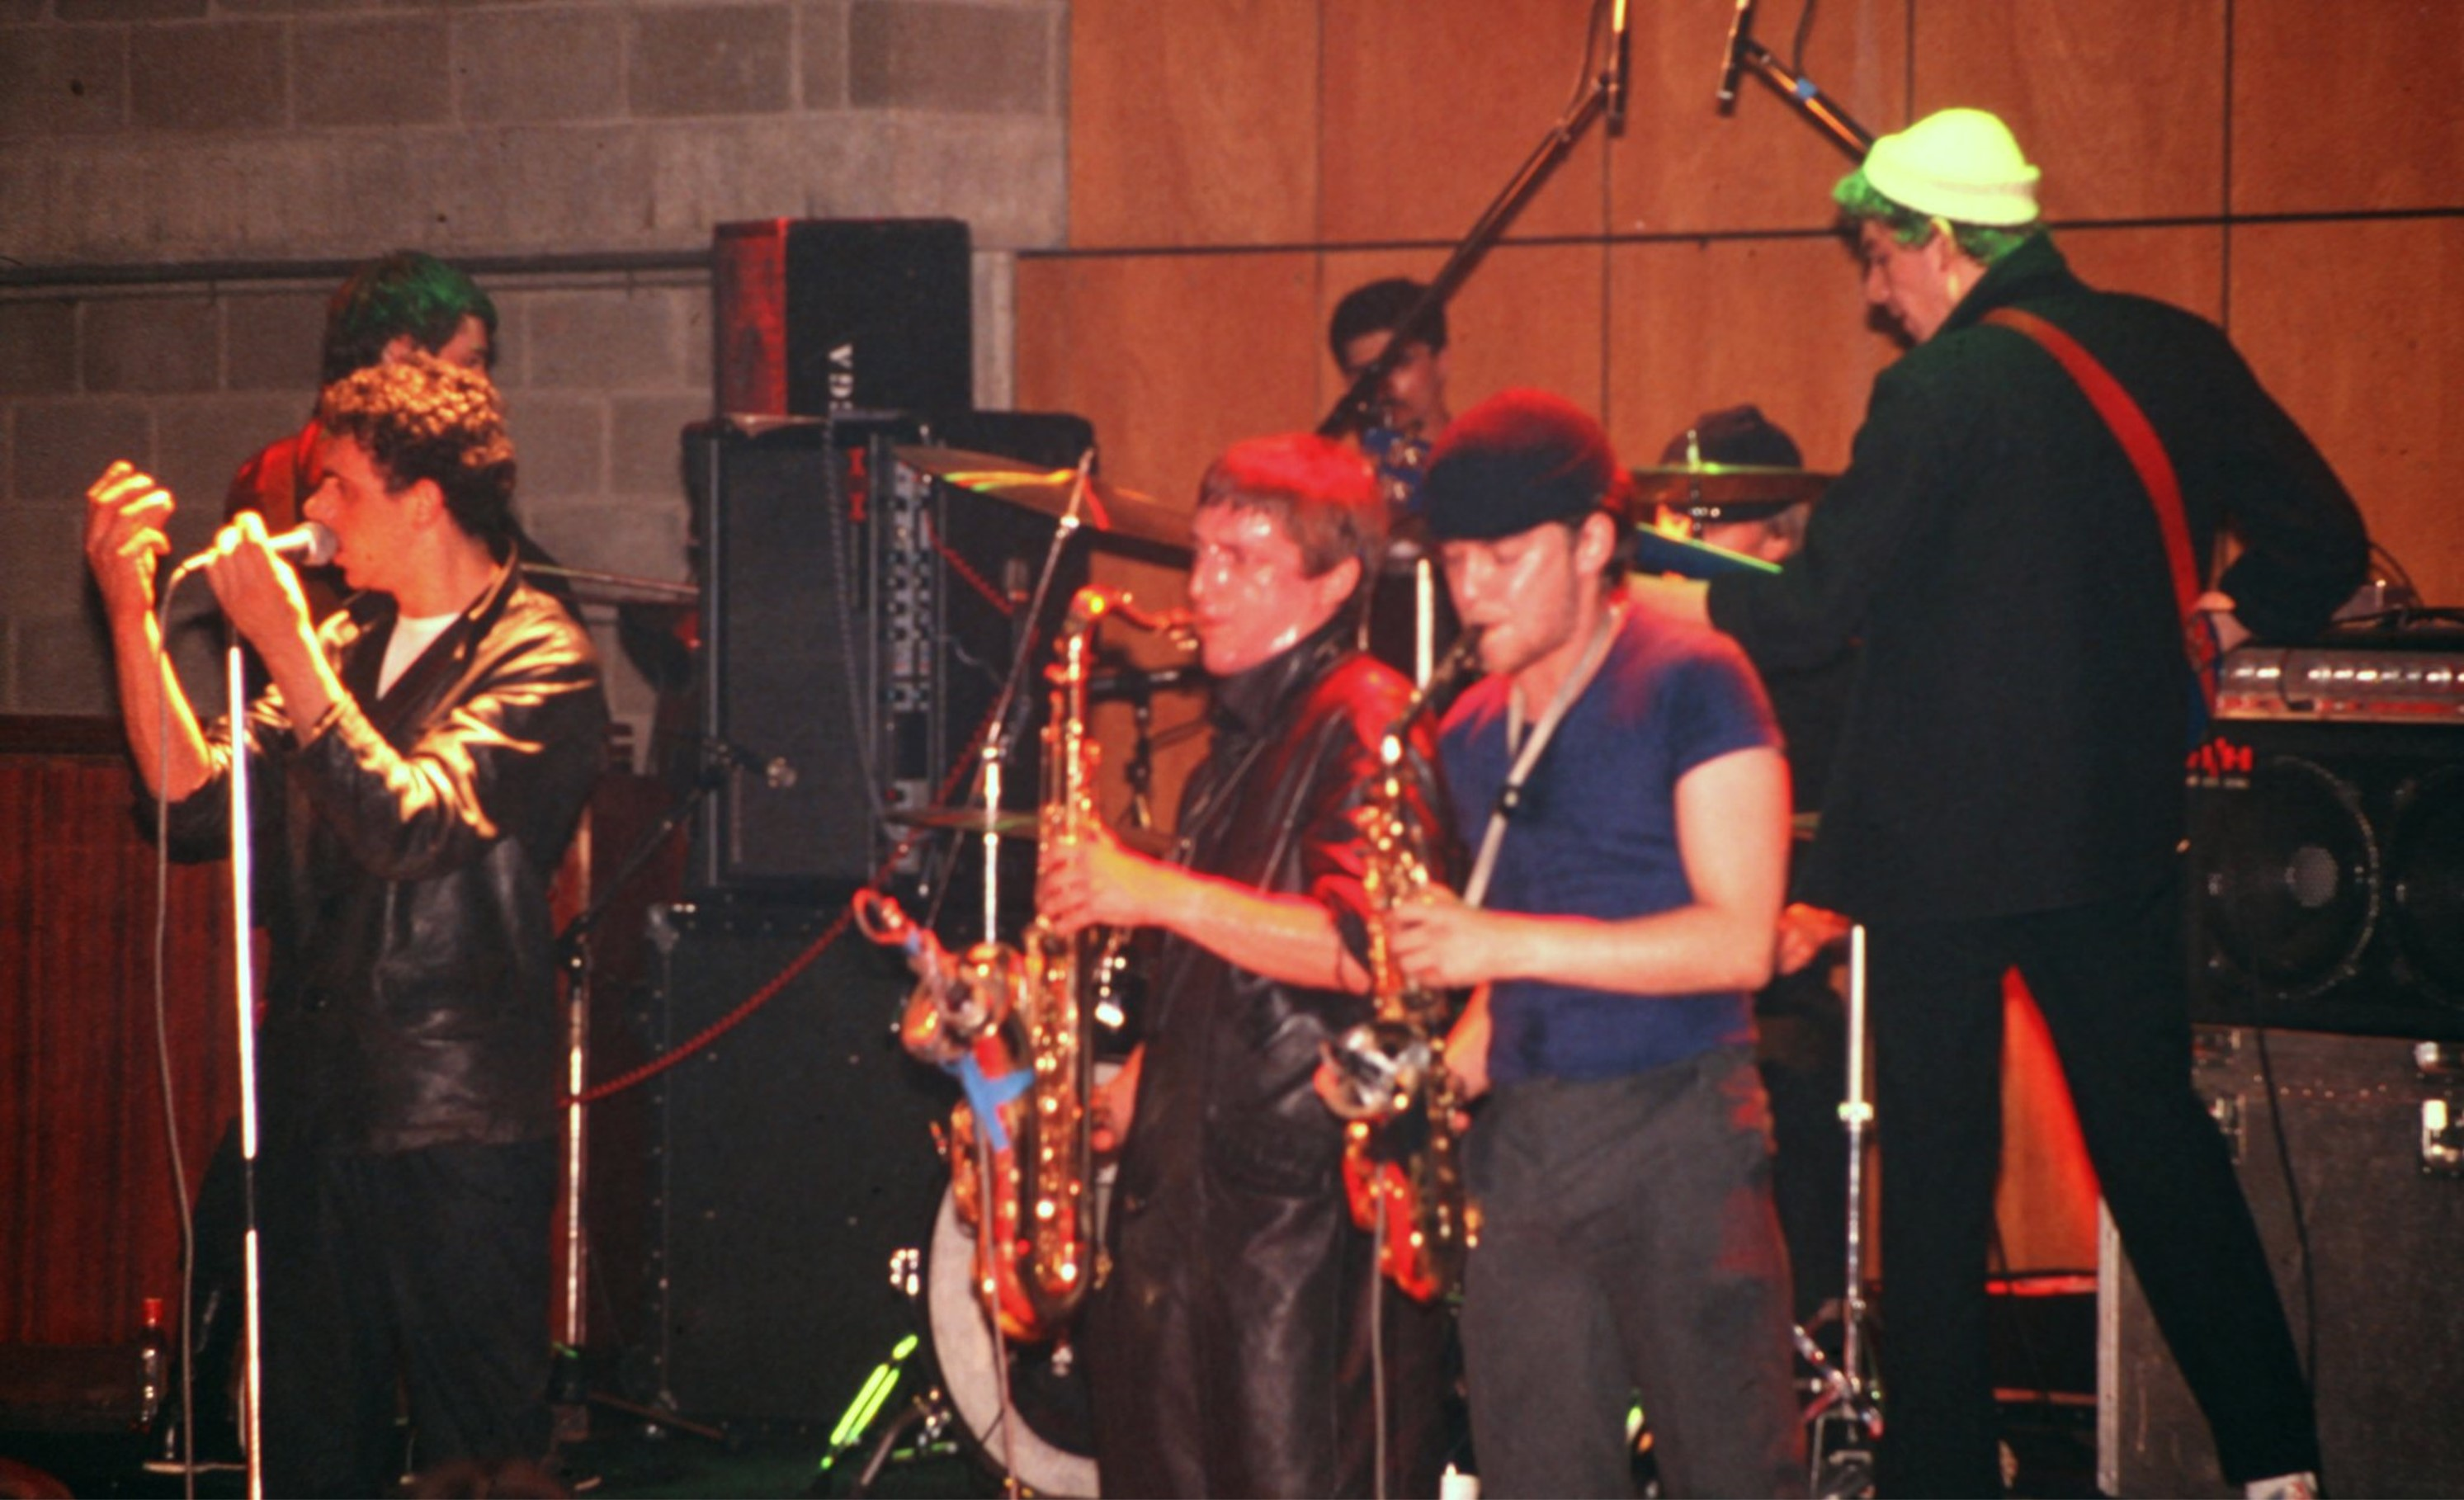 Dexys Midnight Runners at uea in 1980